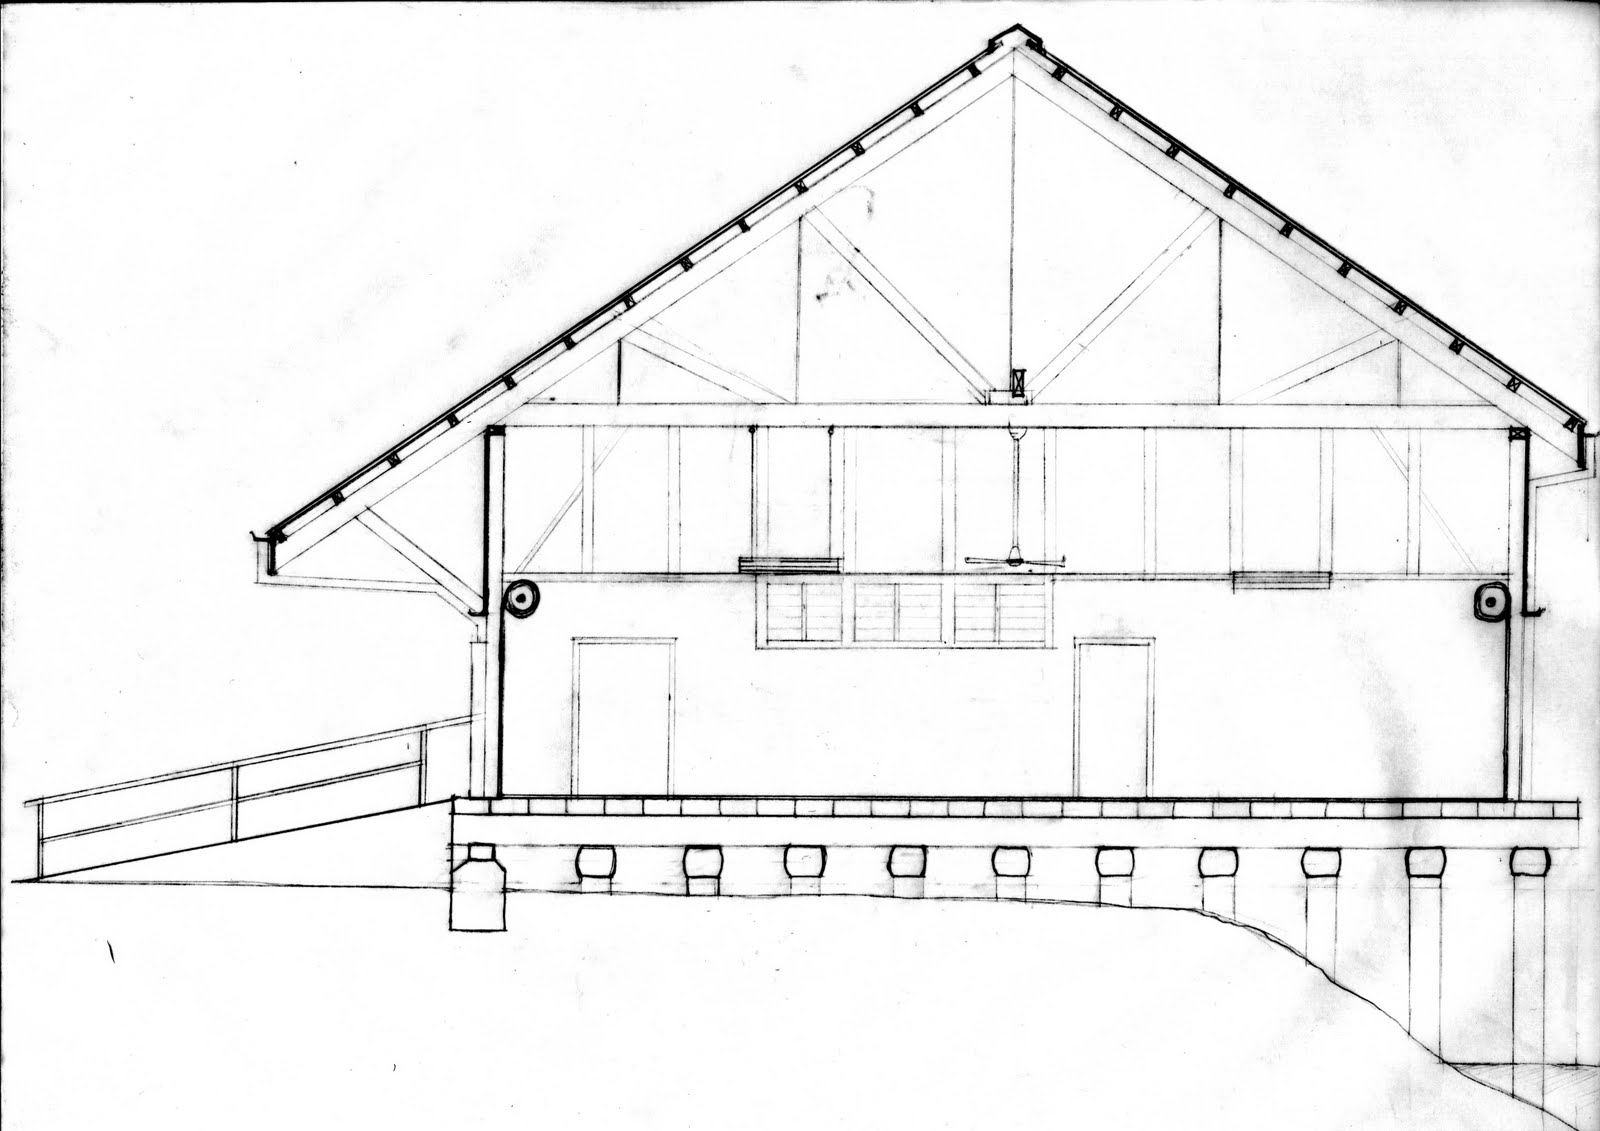 The Senses through Design: completed wharf section - technical